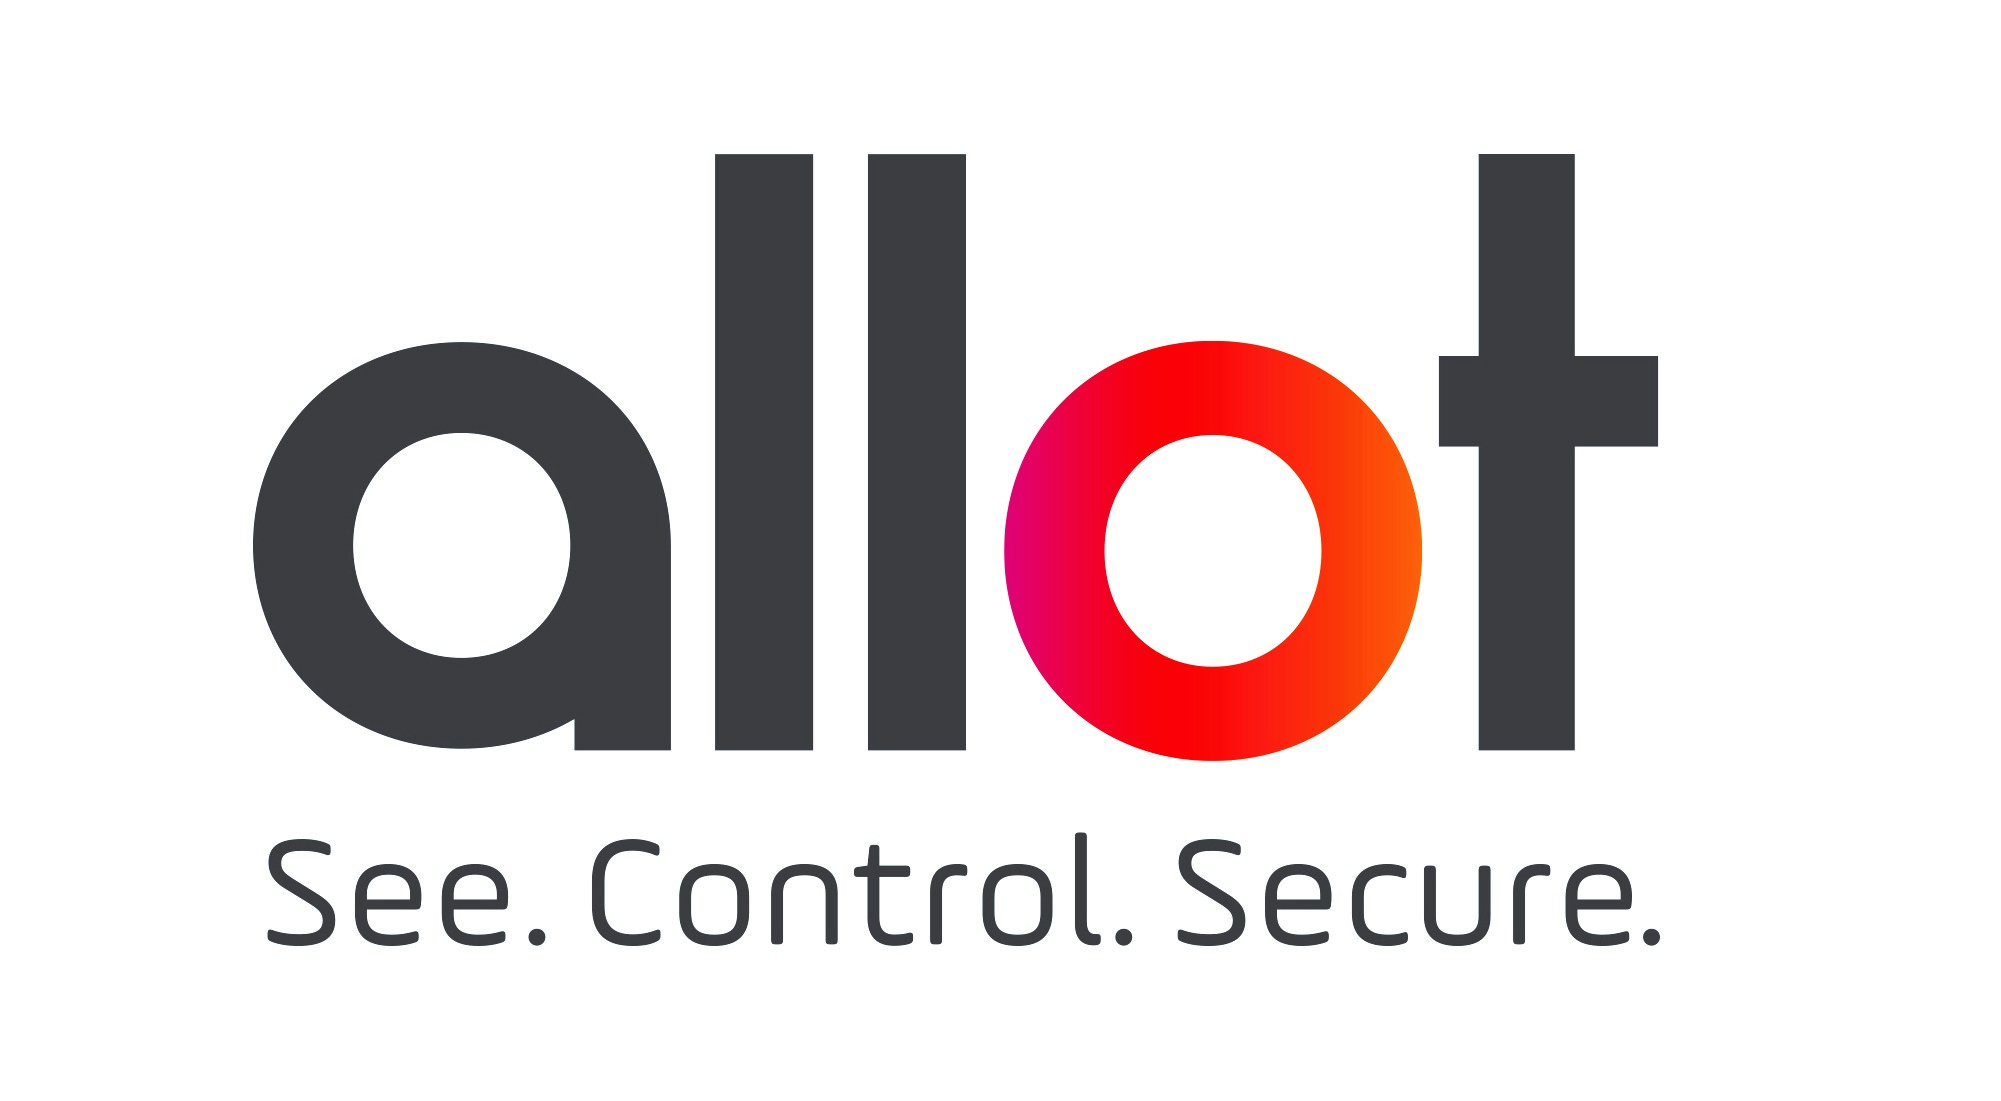 Allot Allows Telecom Providers to Leverage Their Networks for Increased Revenues; We view Allot`s Mobile Network Security operations as a growth engine for the company's revenues in the coming years; we initiate coverage on Allot at a share price target of $12.0